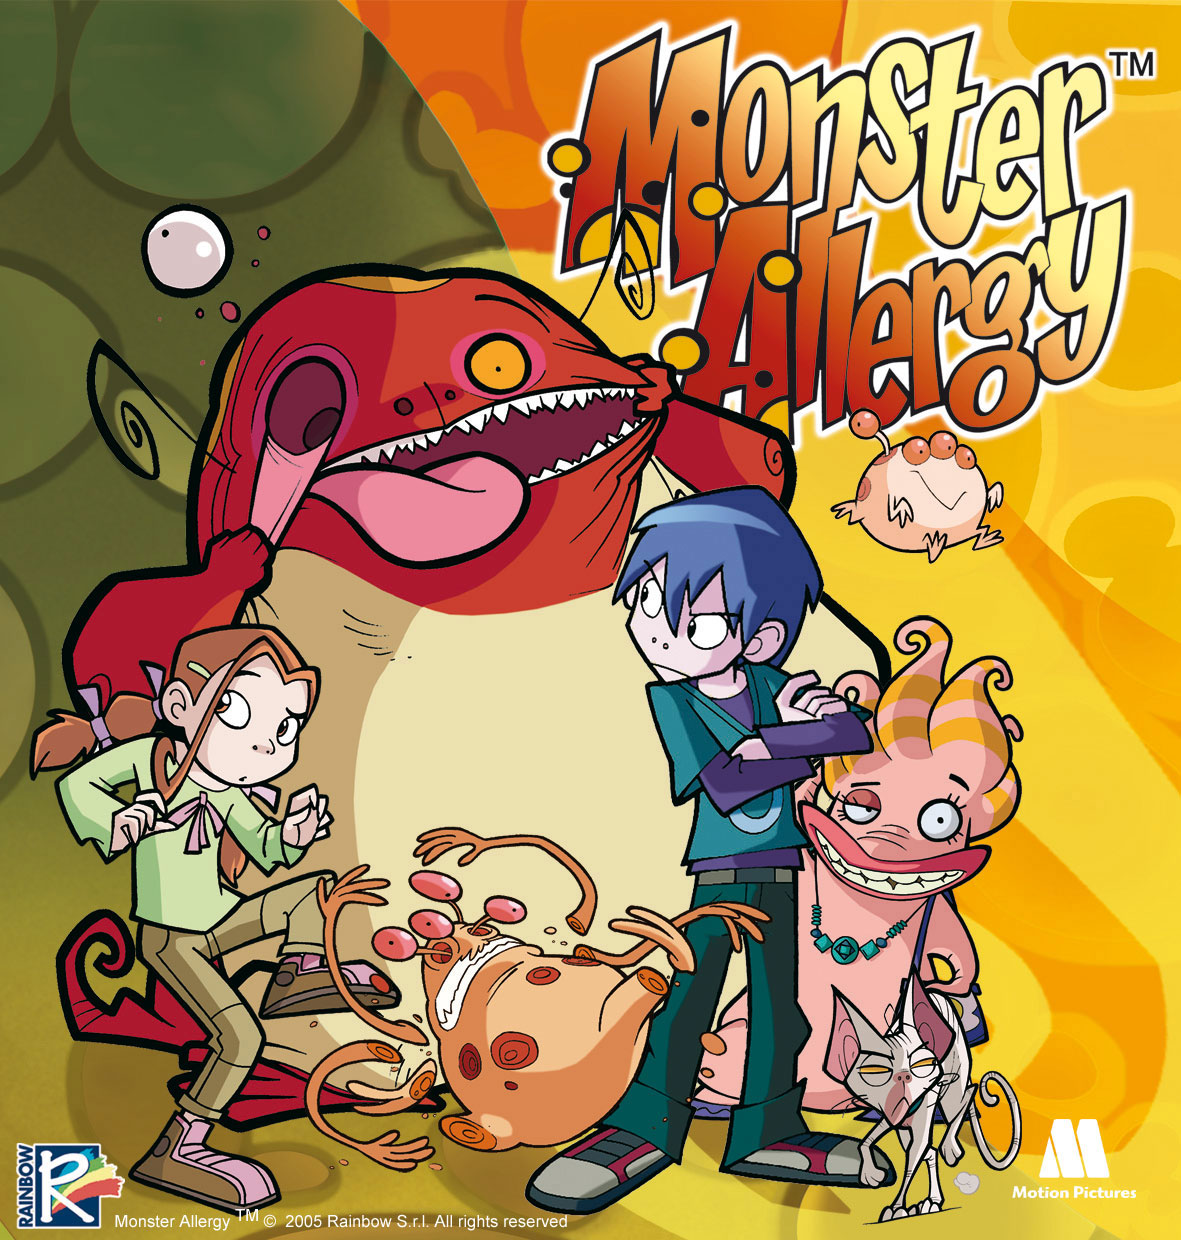 flyer, portada serie dibujos animados Monster allergy